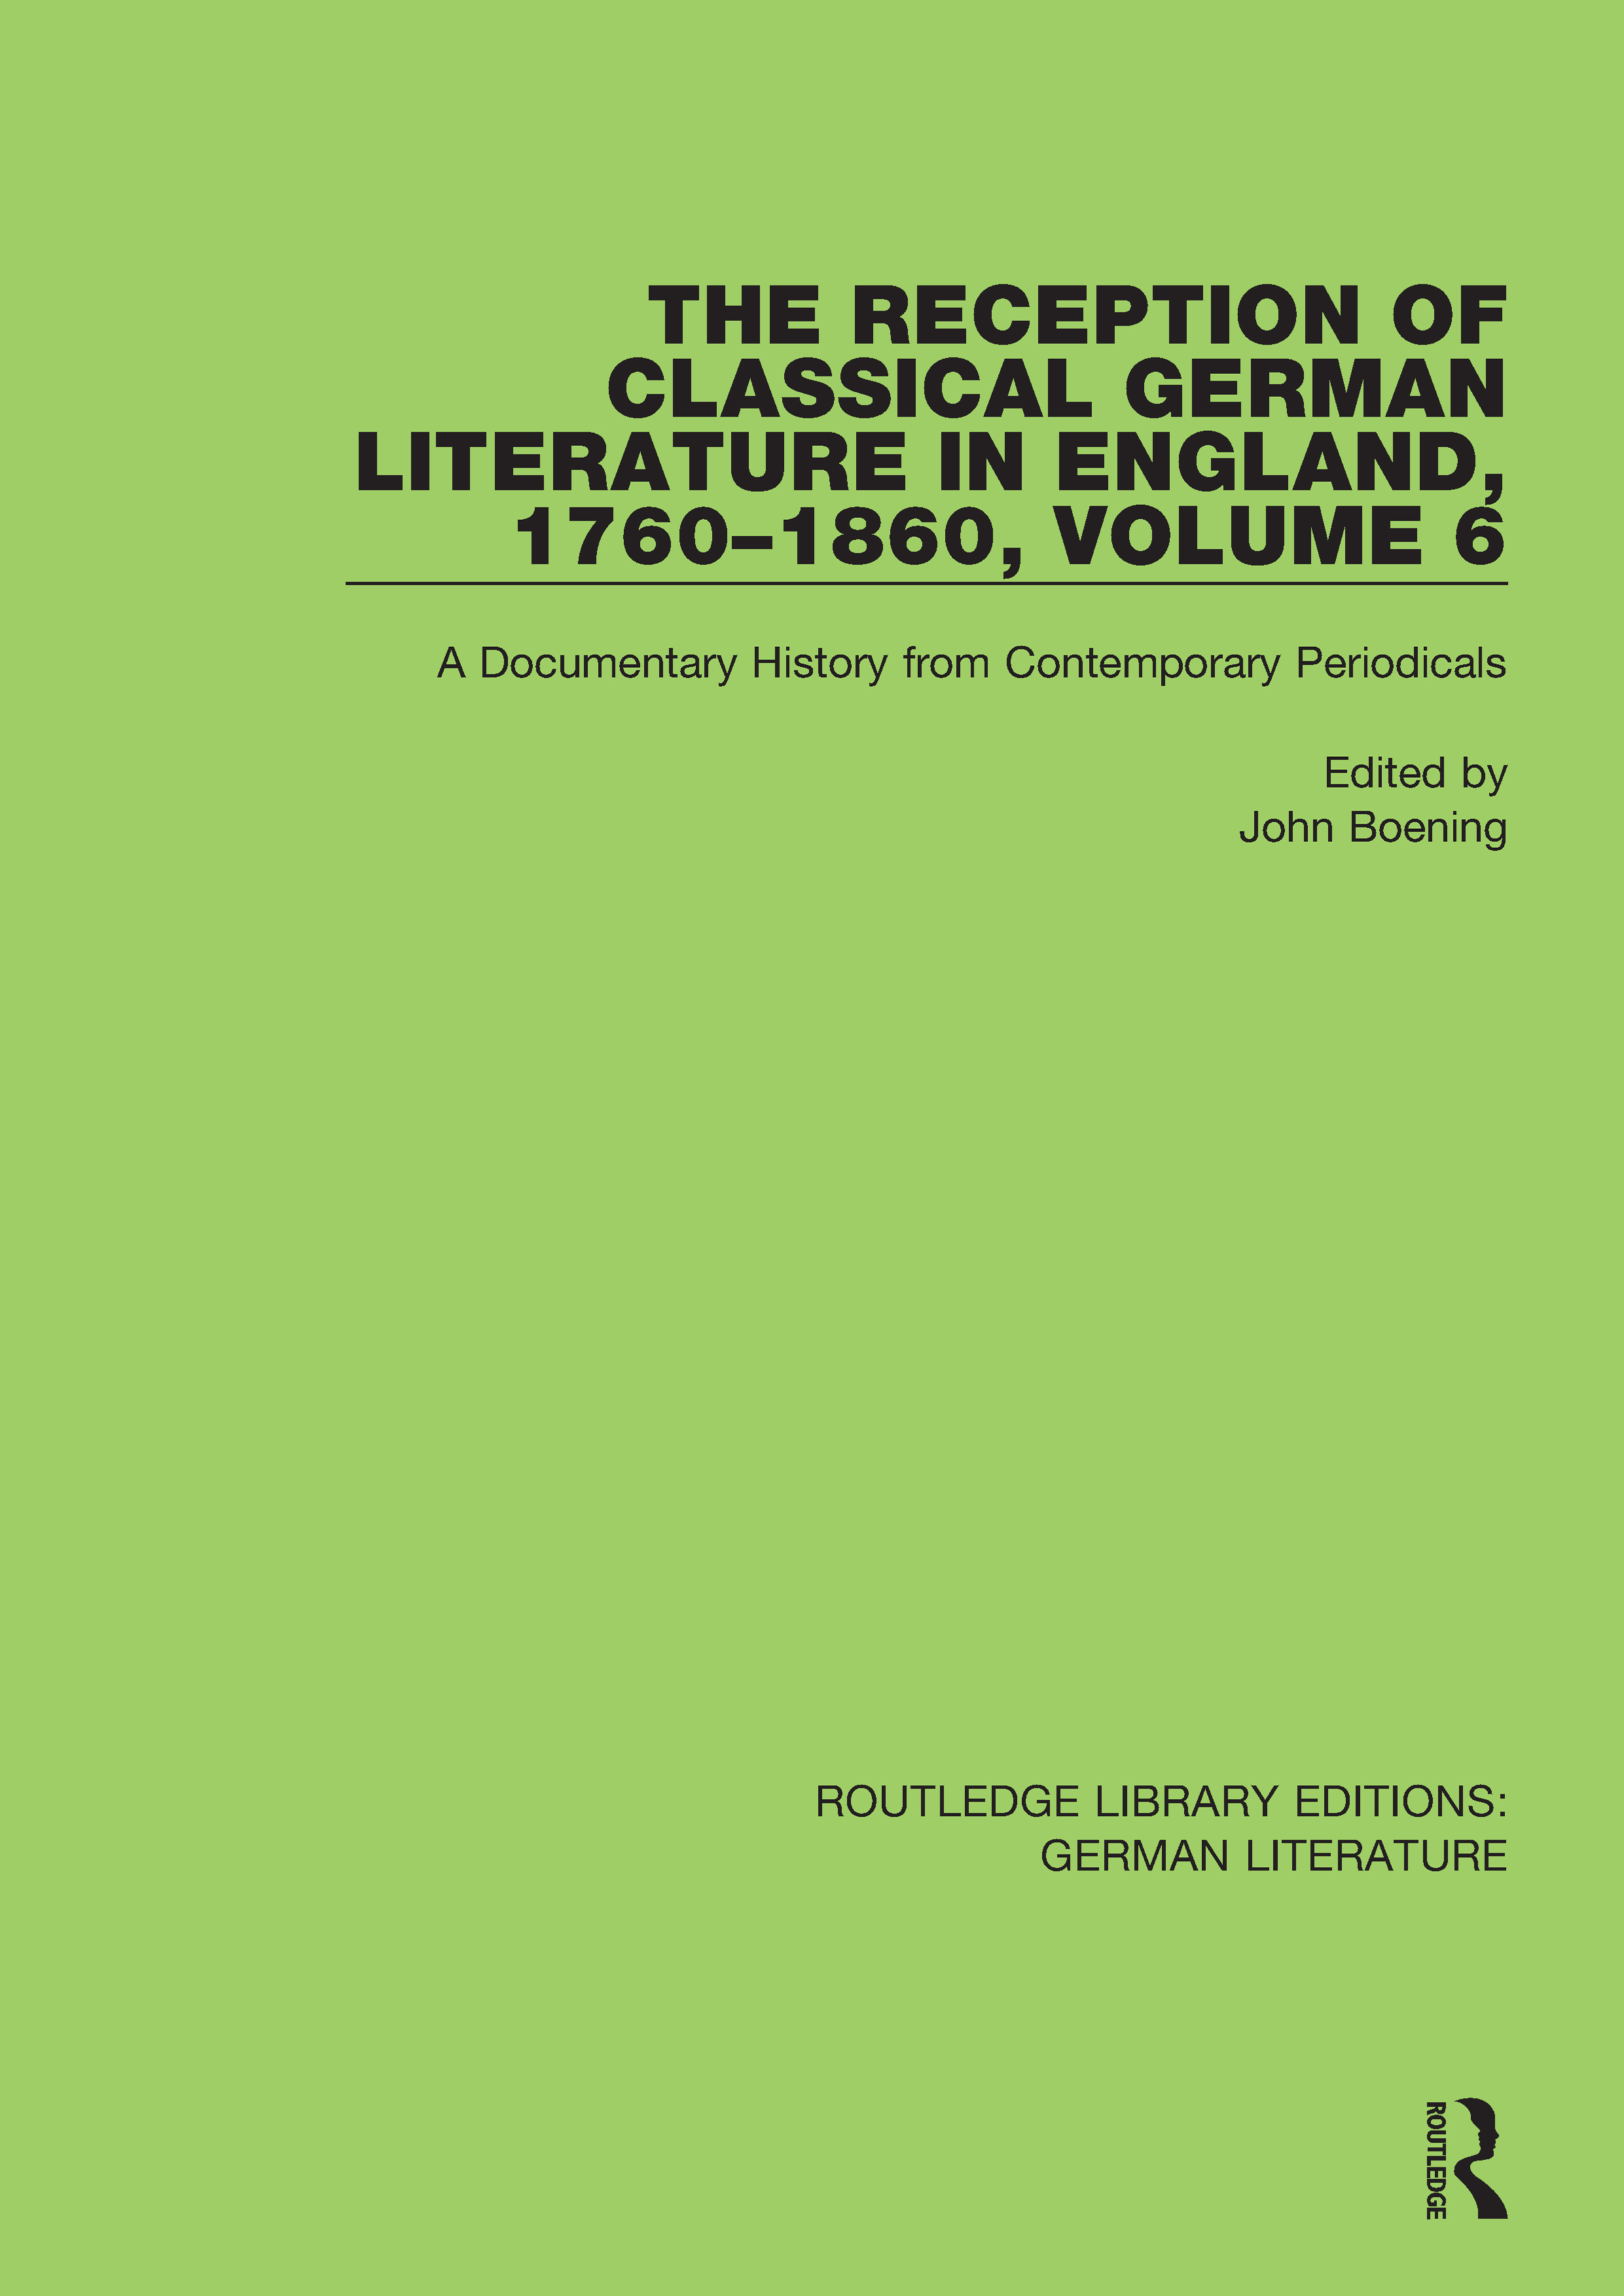 The Reception of Classical German Literature in England, 1760-1860, Volume 6: A Documentary History from Contemporary Periodicals book cover